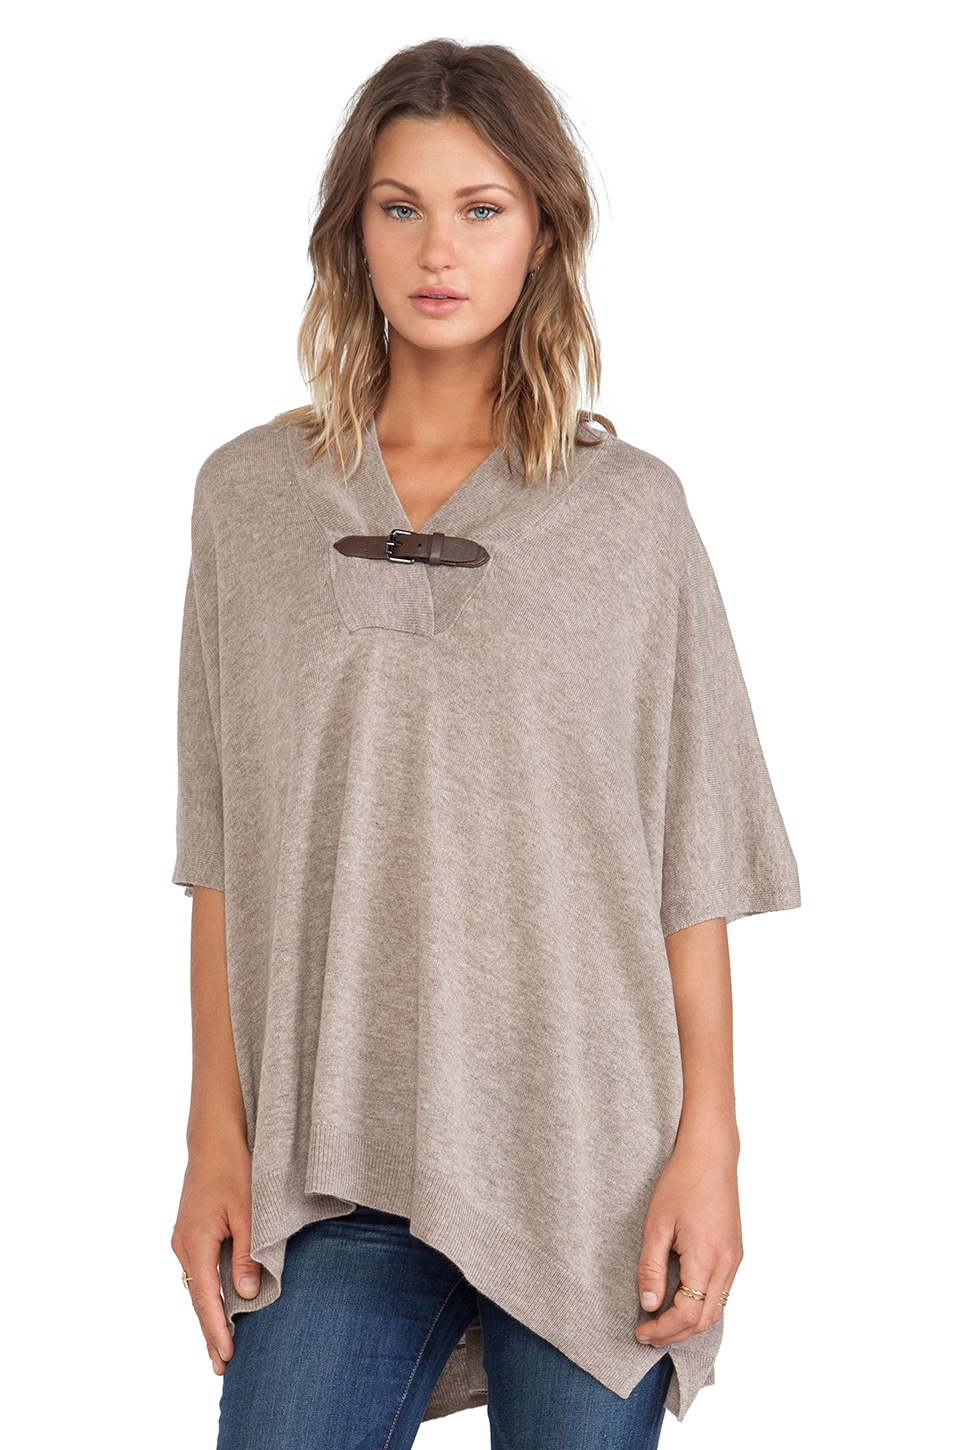 Autumn Cashmere Buckle Poncho in Stone